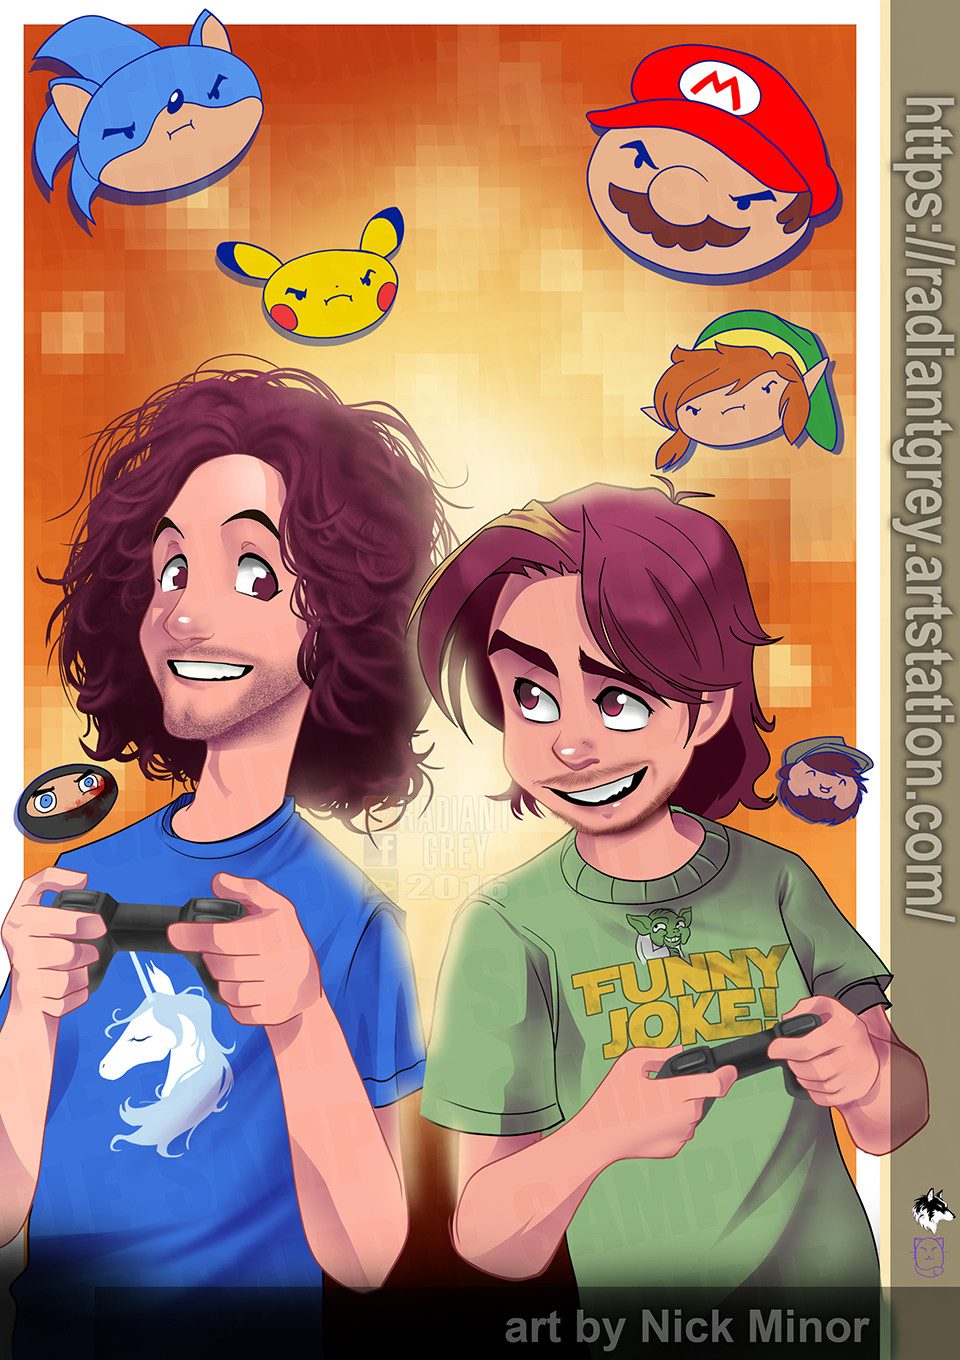 Nick minor game grumps web